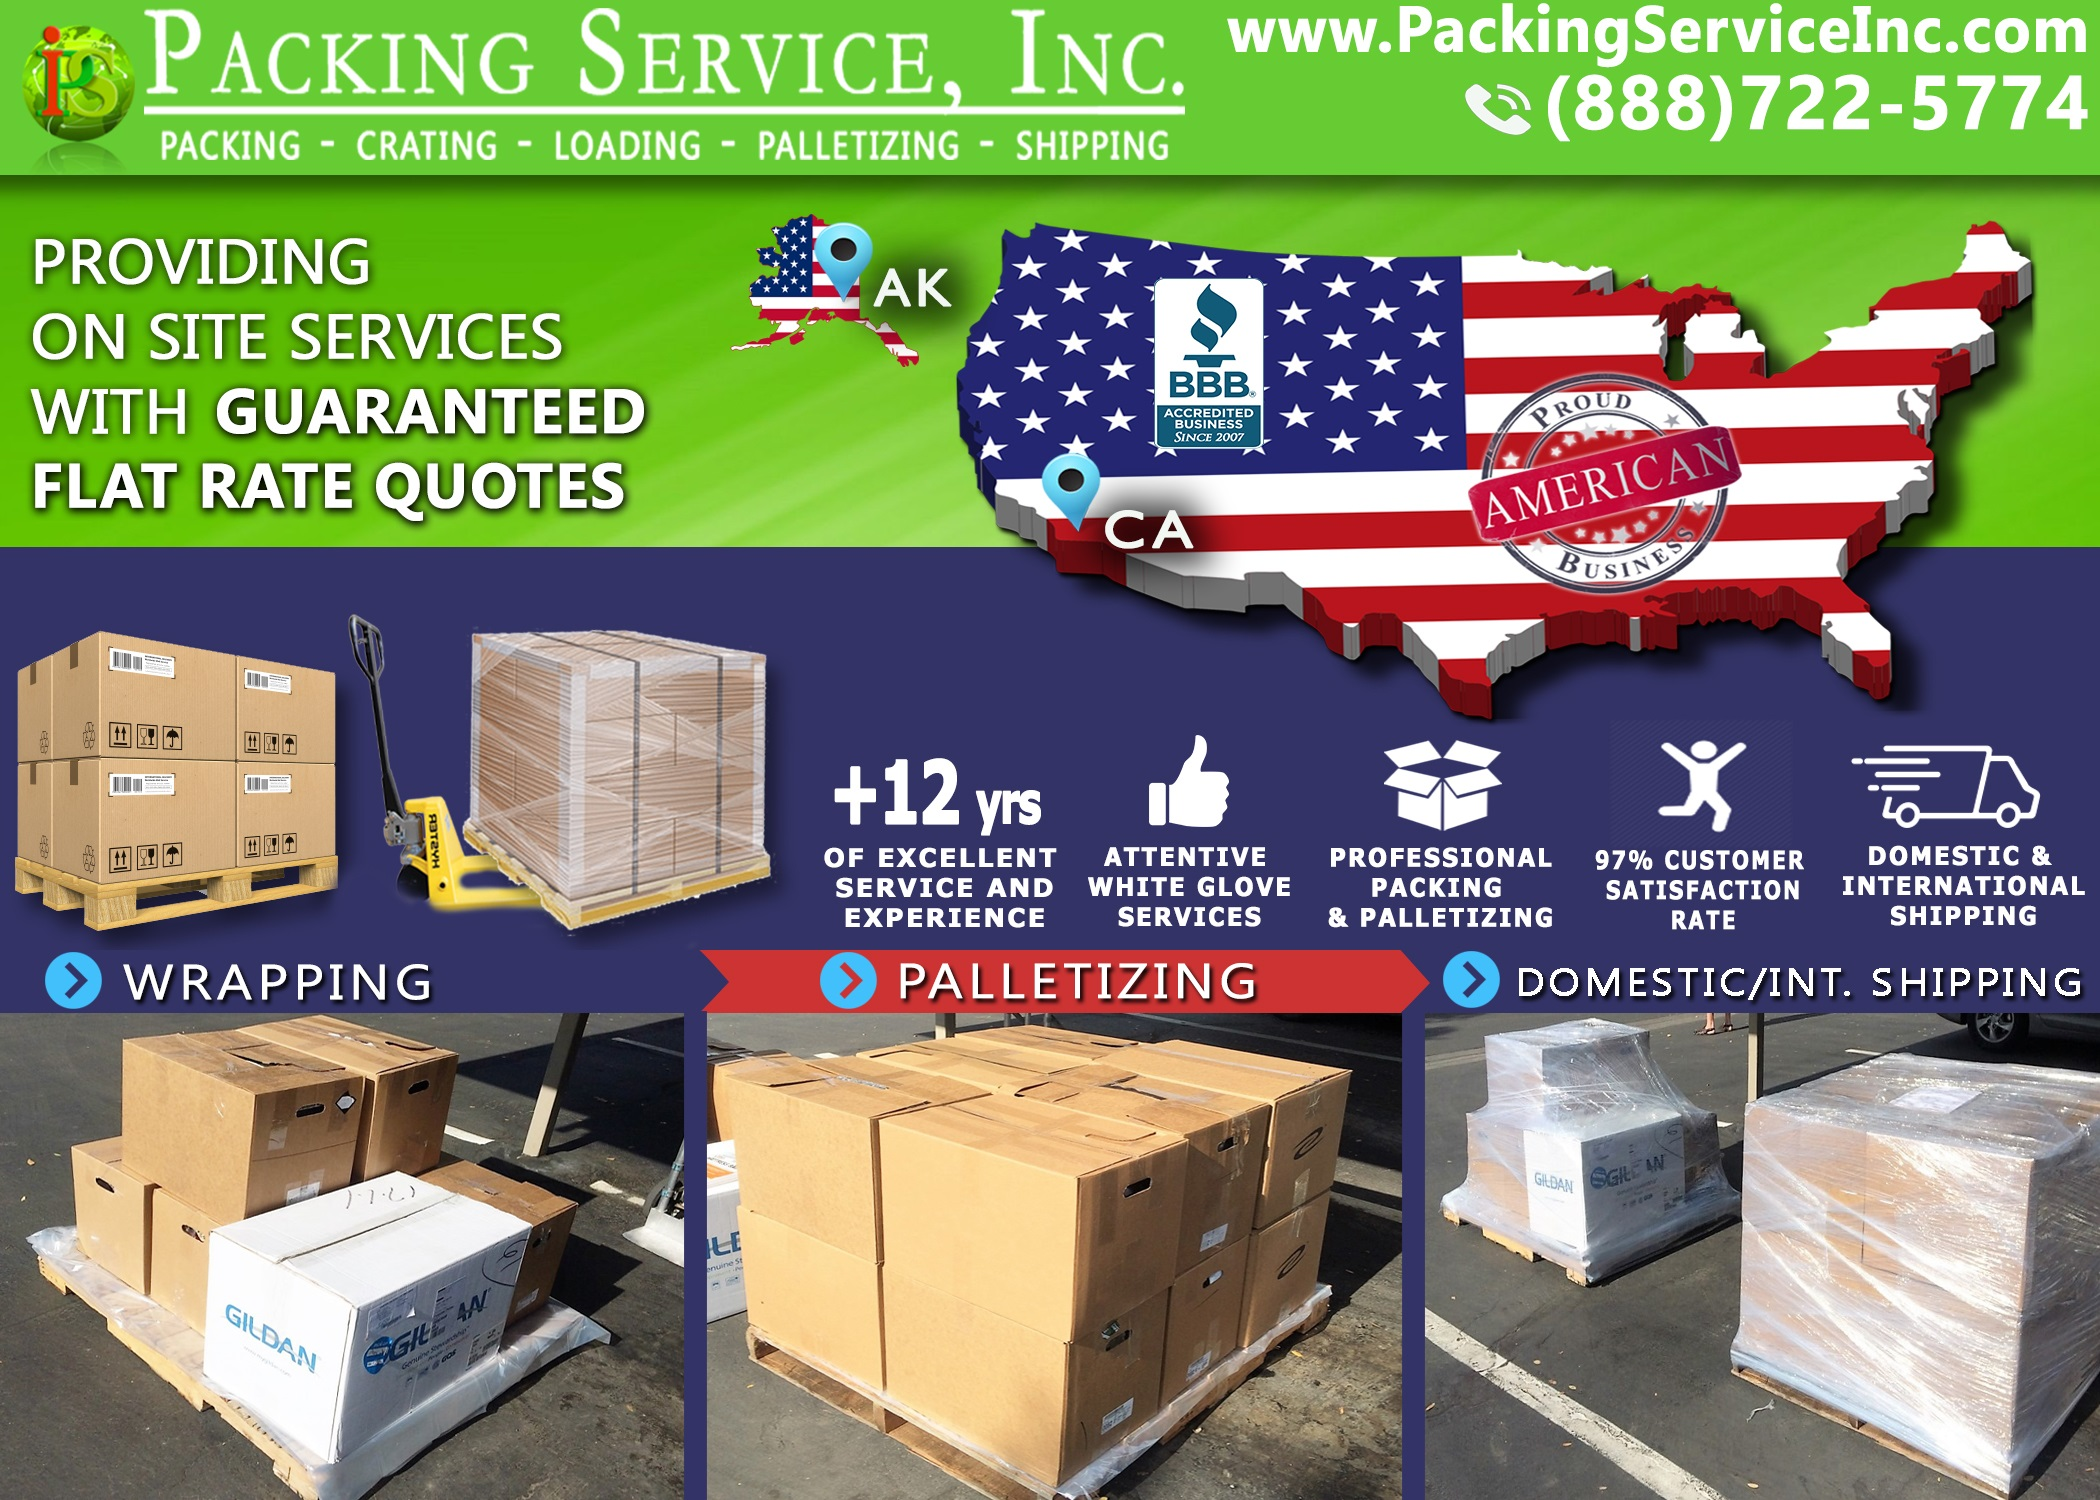 packing-boxes-palletizing-and-shipping-from-fresno-ca-to-palmer-ak-with-packing-service-inc-988